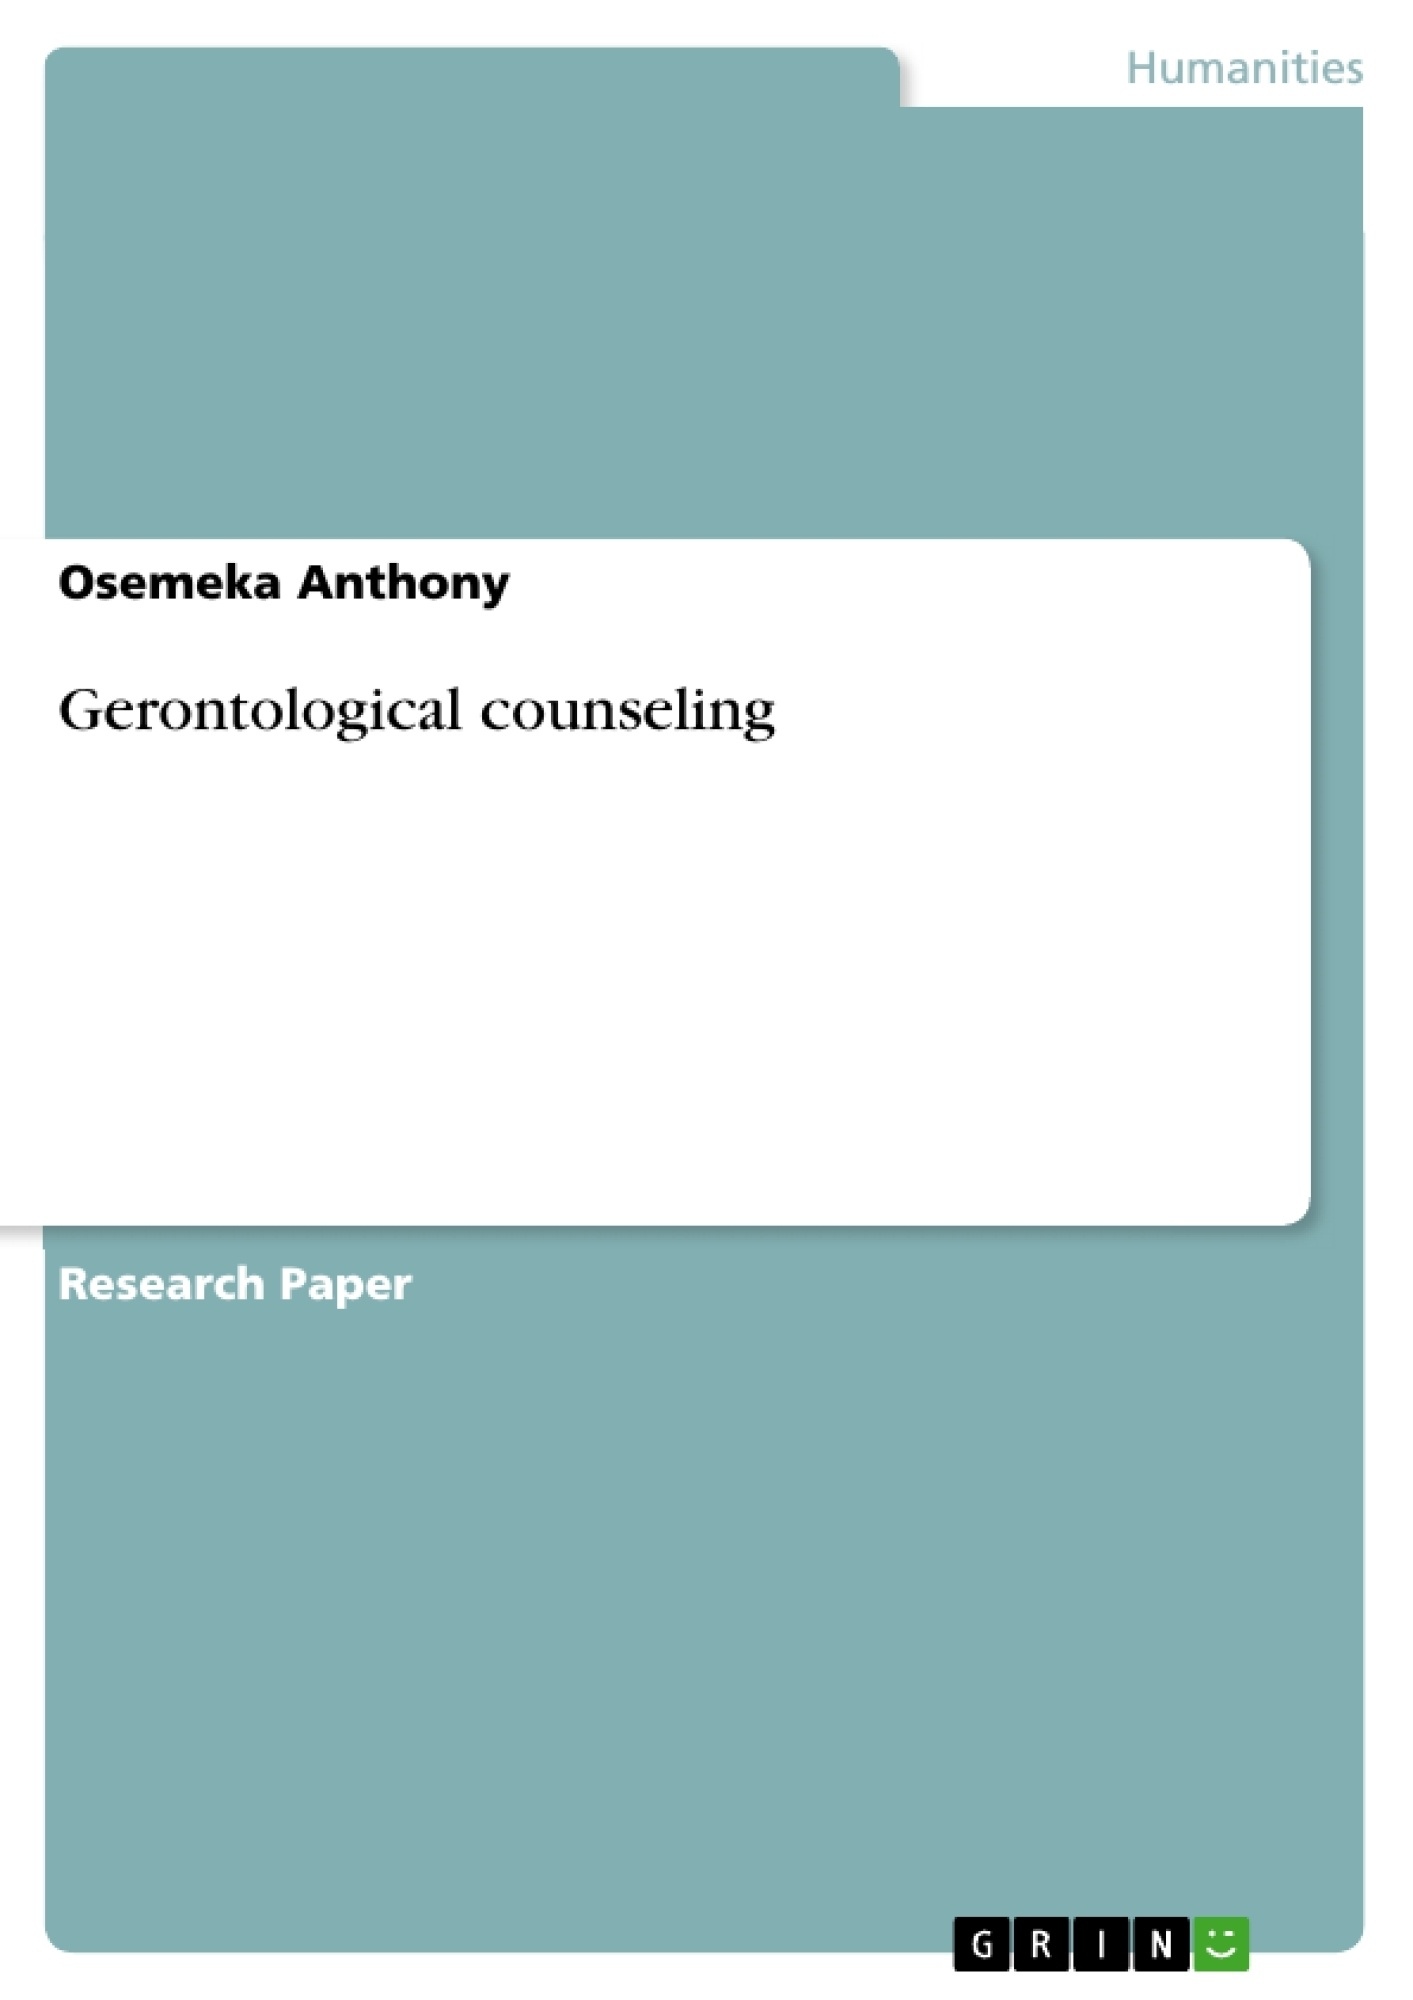 Title: Gerontological counseling